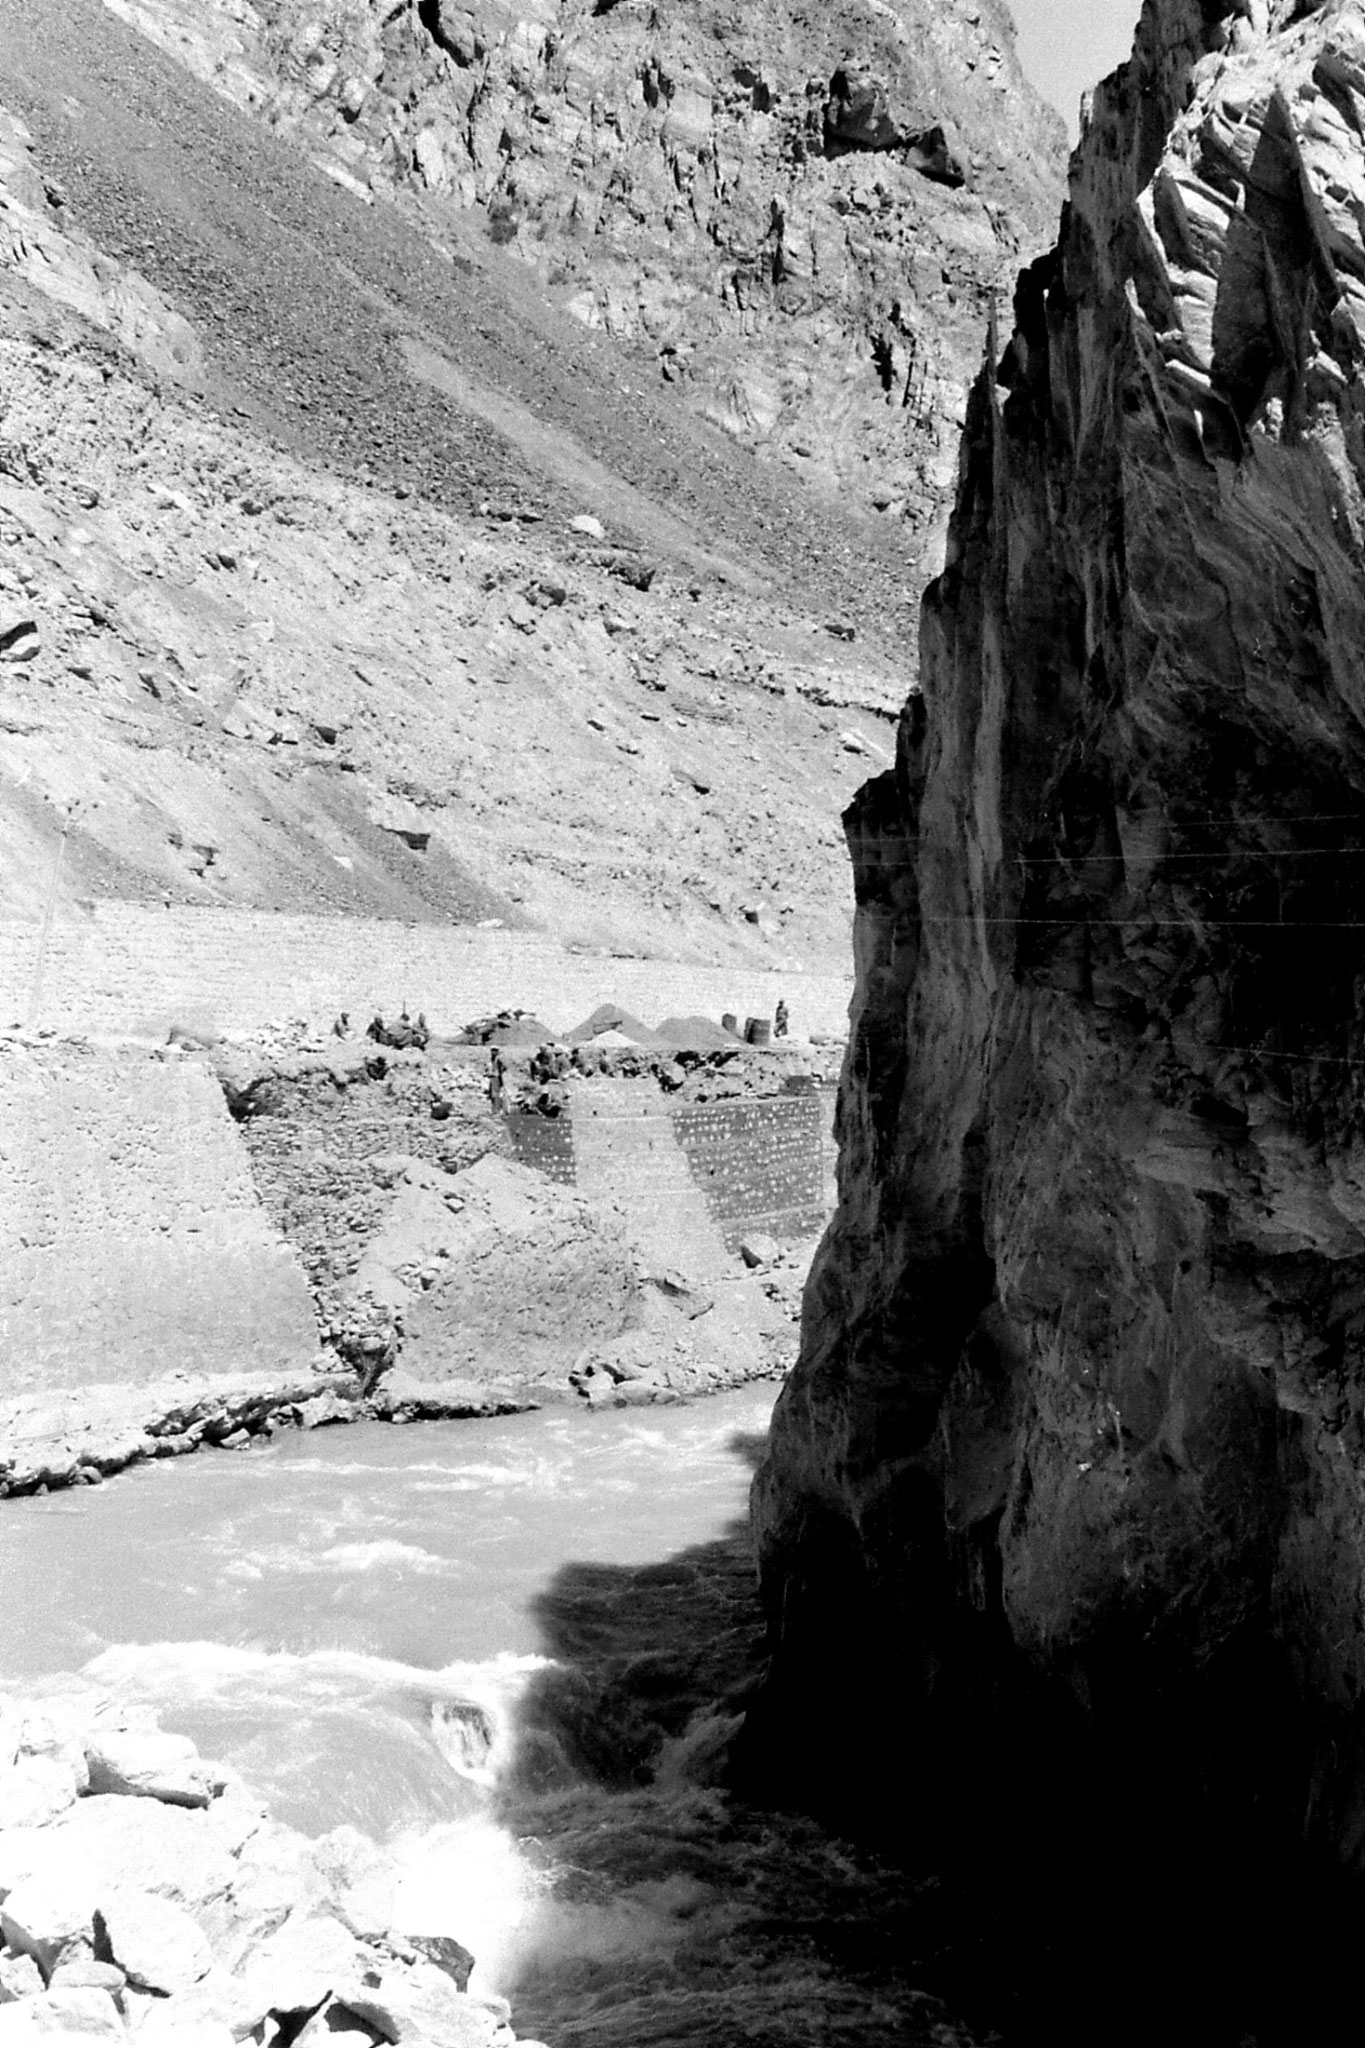 10/9/1989: 14: workmen on Pakistan side of Kunjerab Pass